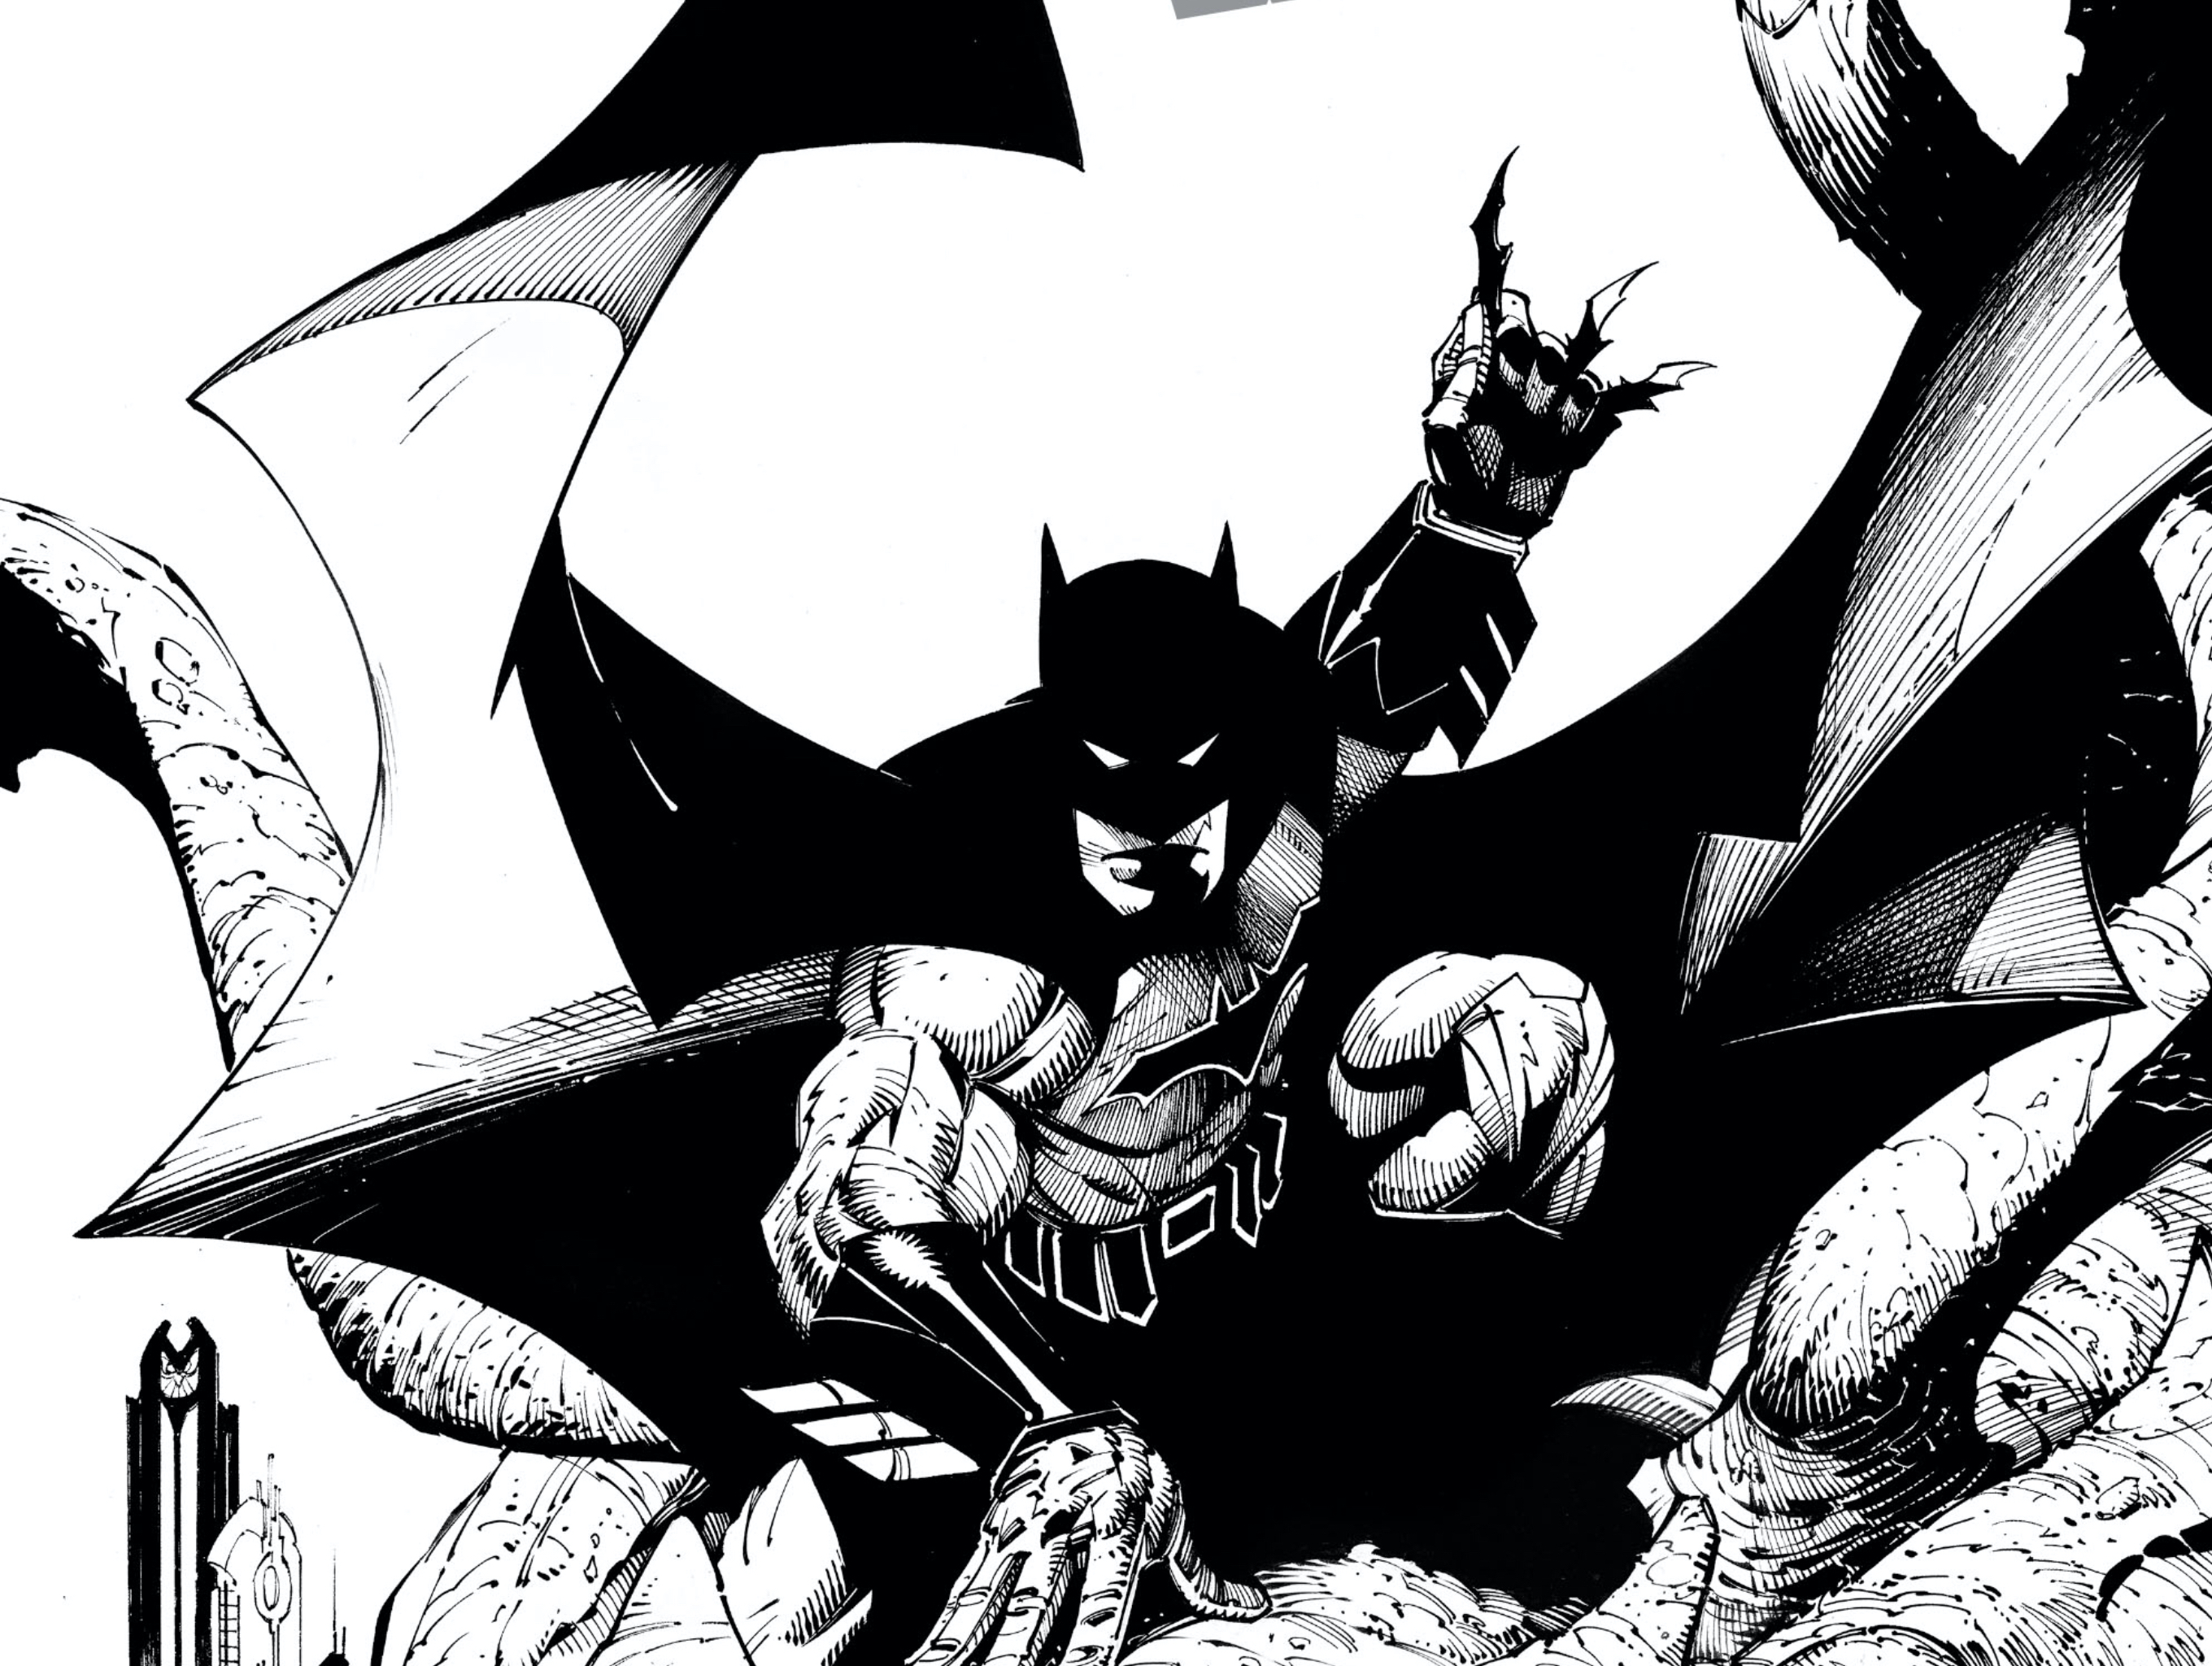 Image: Batman crouches, readying three batarangs, rendered all in black and white.